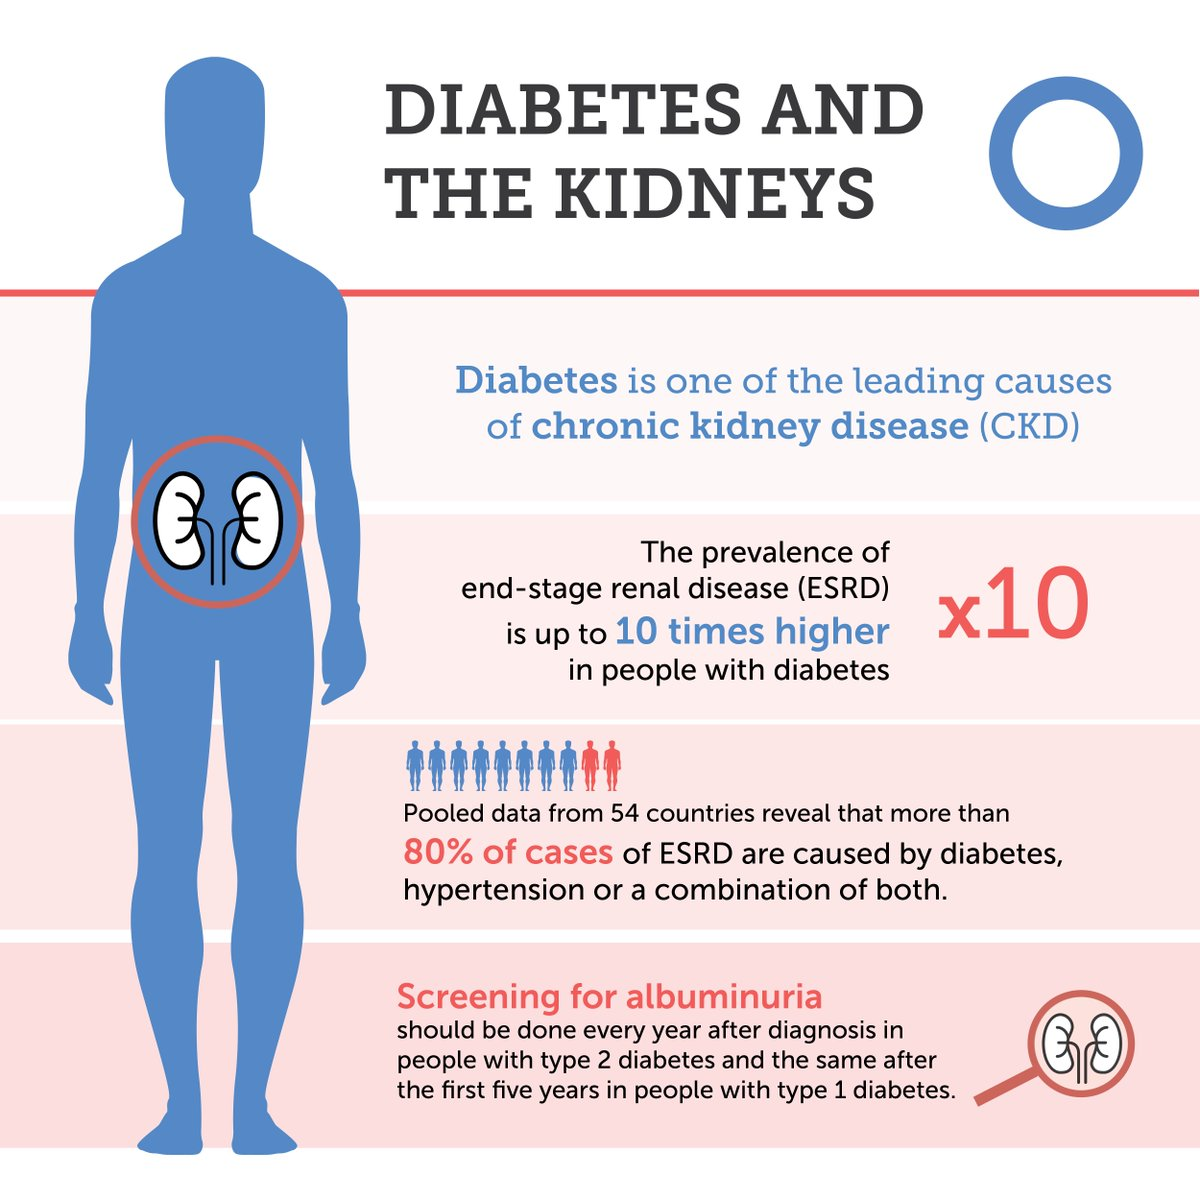 test Twitter Media - Up to 40% of people with #diabetes will develop chronic kidney disease.  It is important to control blood glucose and blood pressure to reduce the risk https://t.co/TJZhzbUHNf https://t.co/rB1YdV1xpo